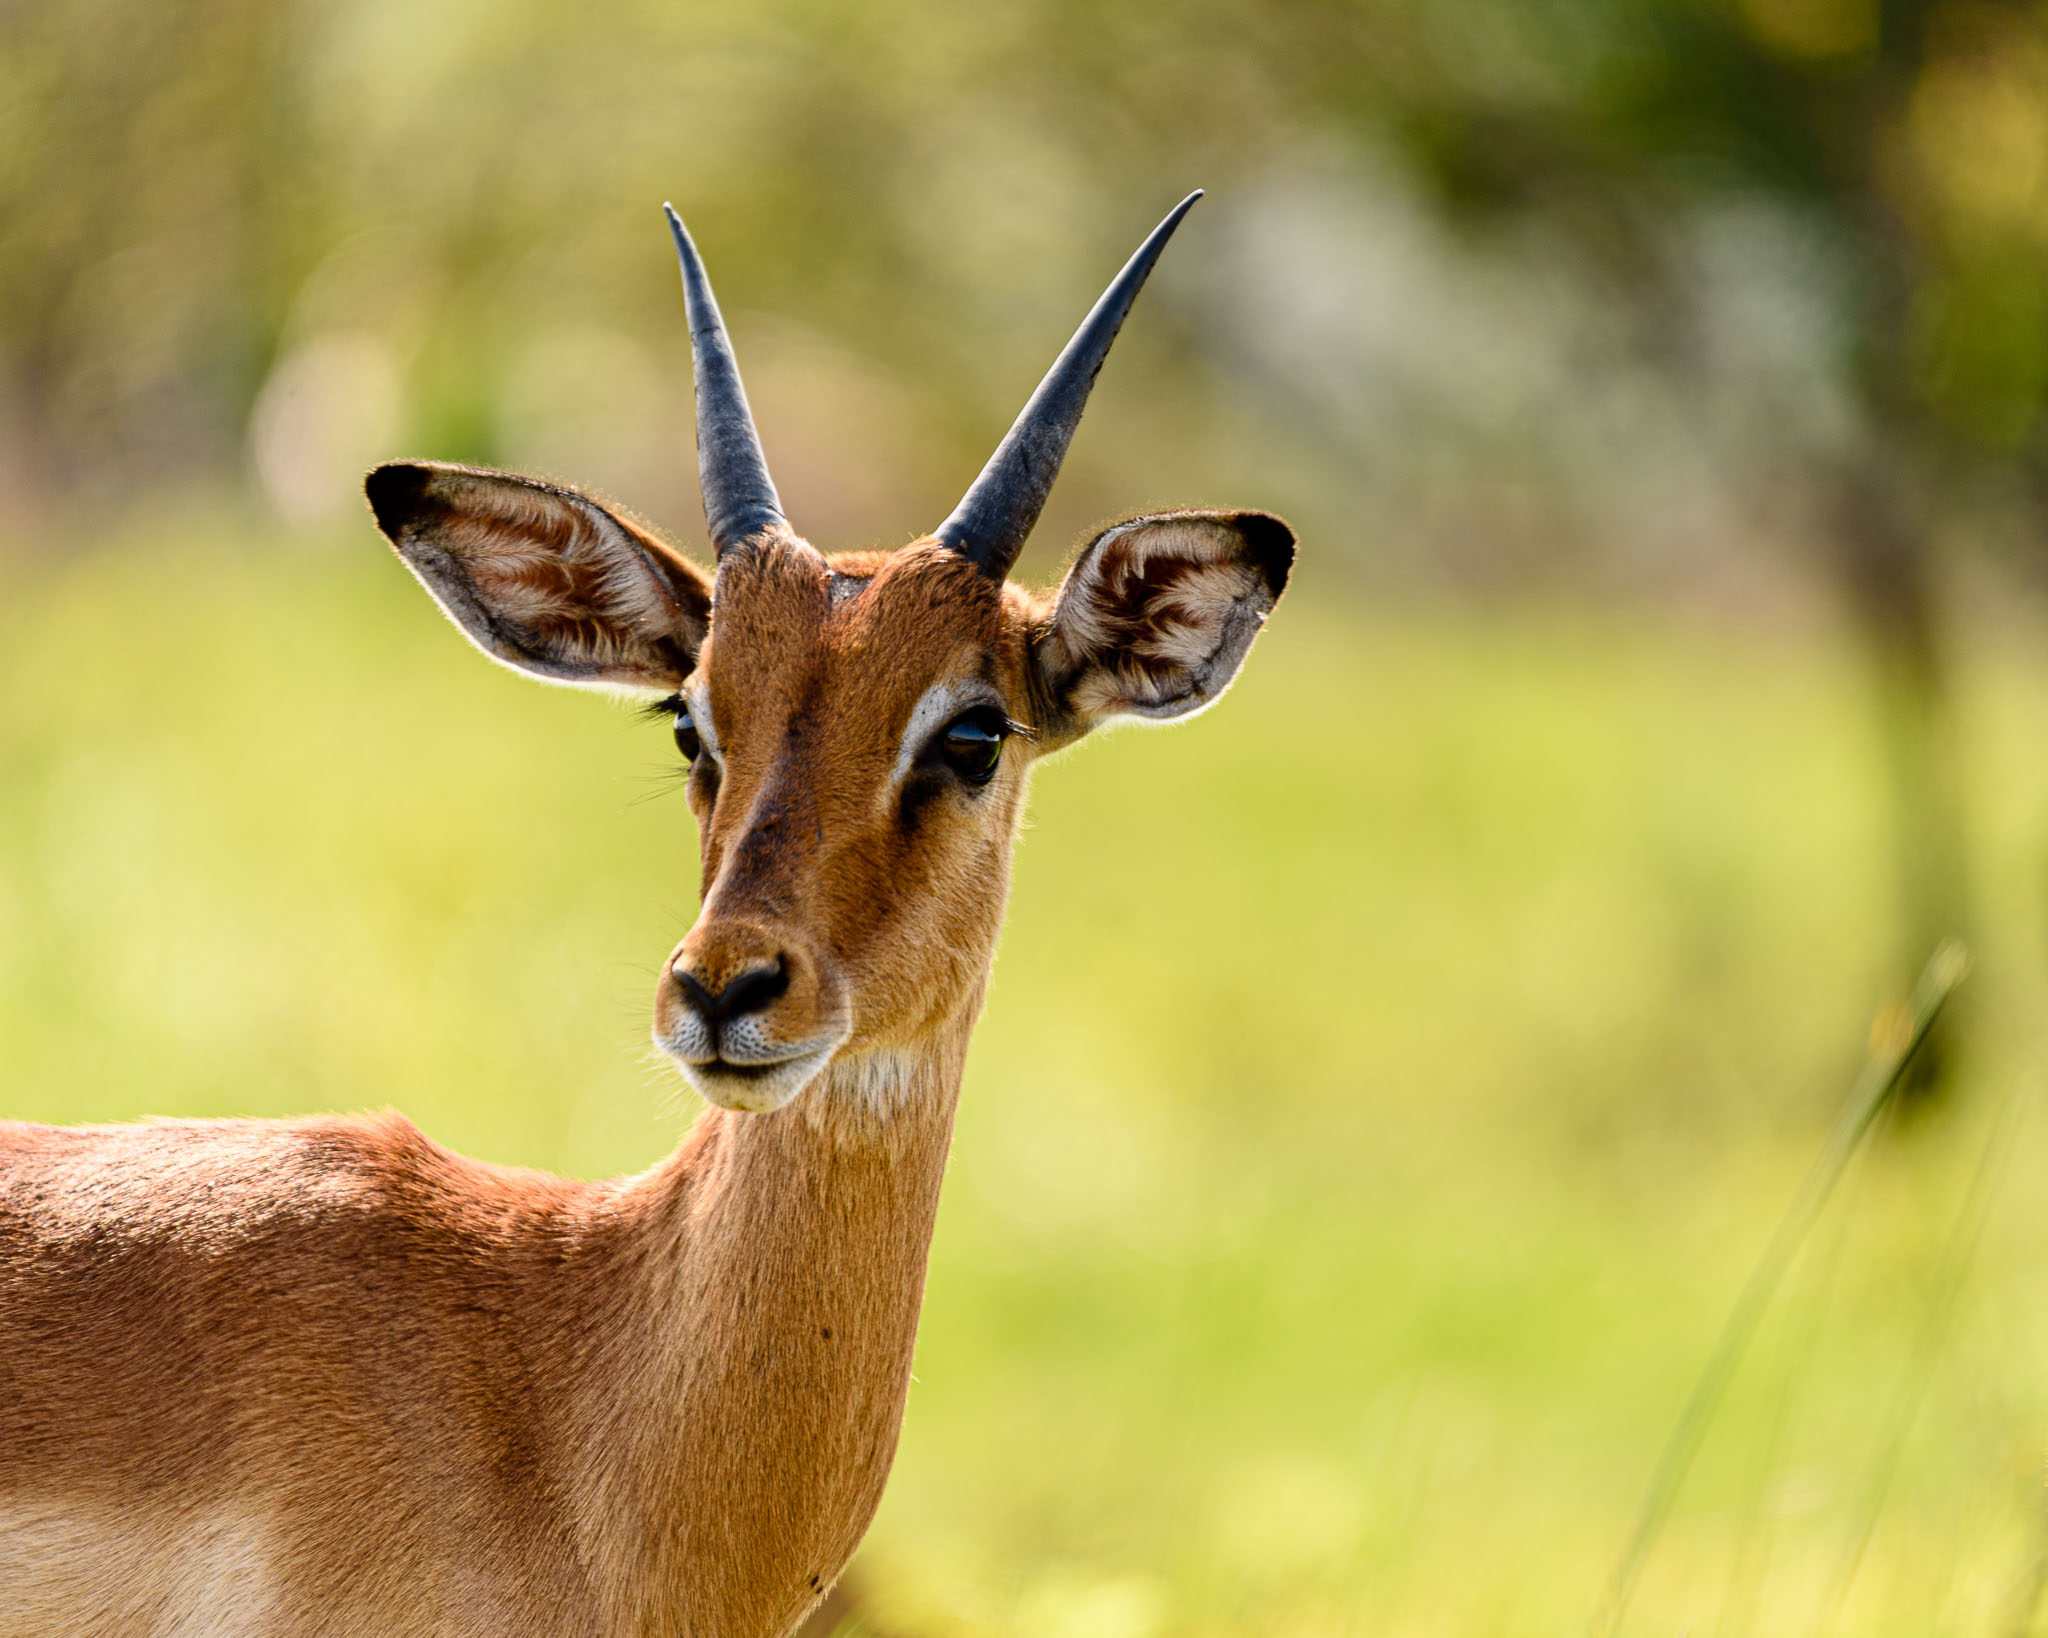 The steenbok is one of the most common antelope in Kruger national park, but that doesn't mean that getting a good portrait is easy. They are quite skittish and run off with the least provocation.